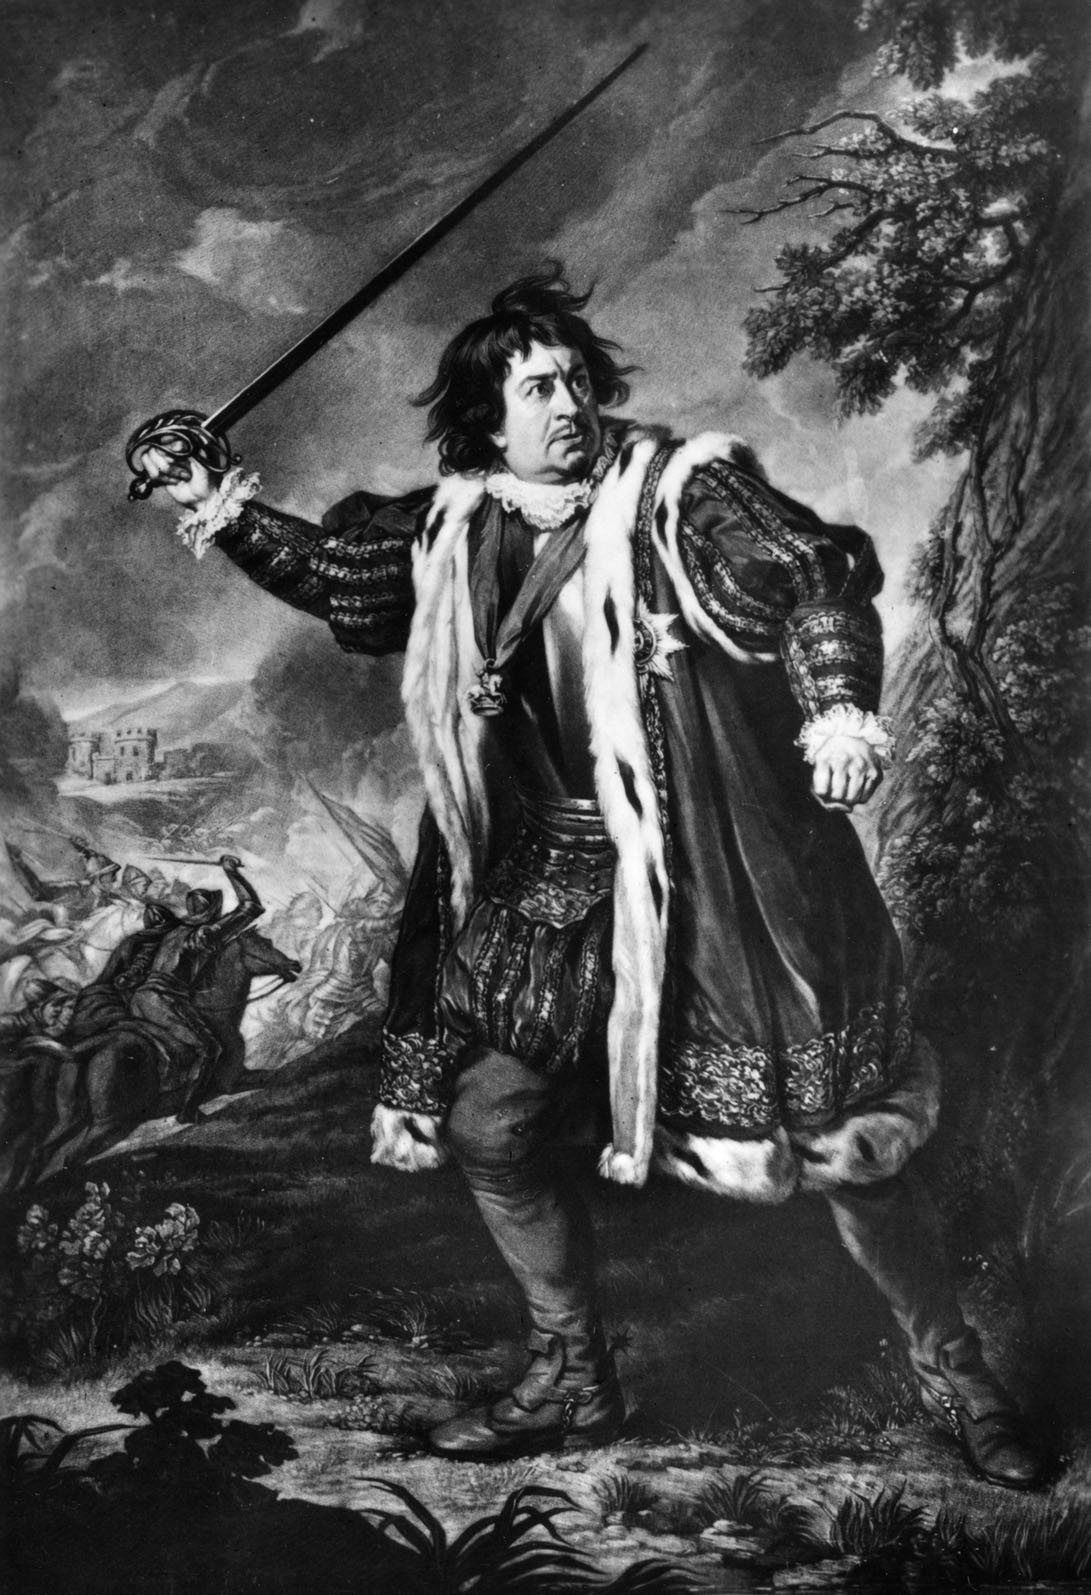 David Garrick as Richard III. From a mezzotint by S.W. Reynolds after N.Dance in the Collection of Mr. Harry R. Beard. DG: English actor and playwright, 1717-1779.  (Photo by Culture Club/Getty Images) *** Local Caption ***